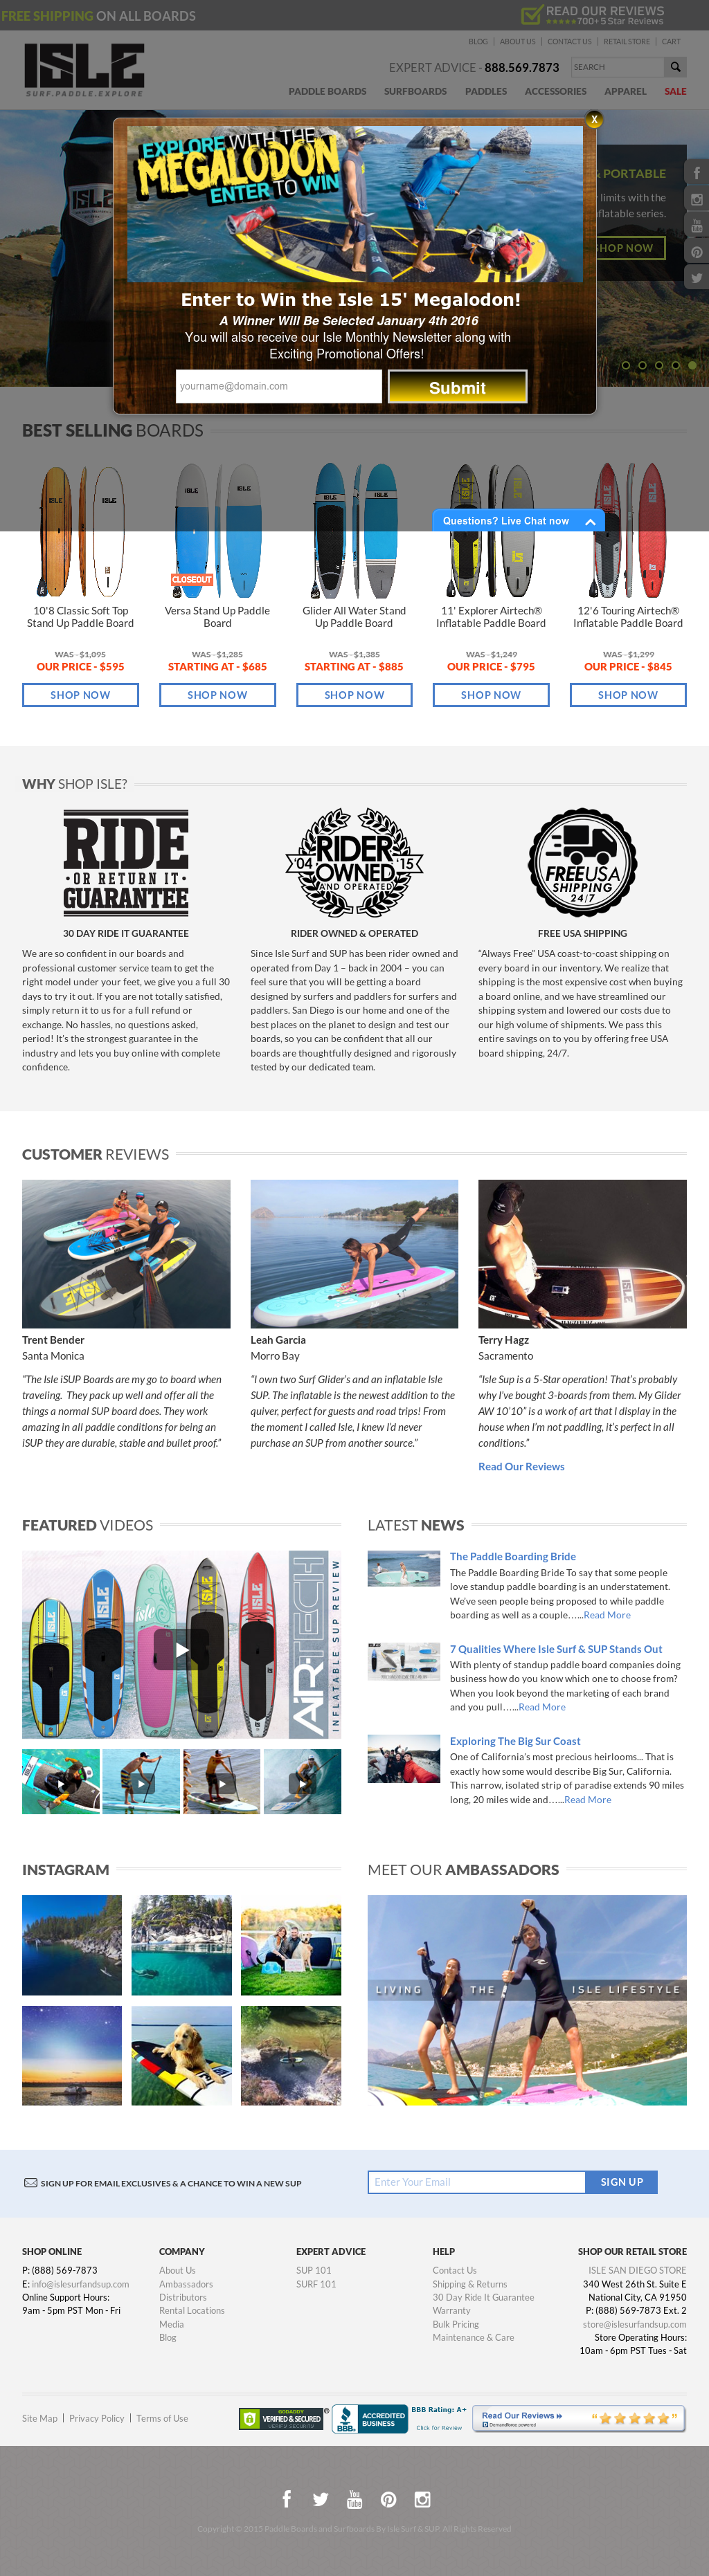 Isle Surf & SUP Competitors, Revenue and Employees - Owler